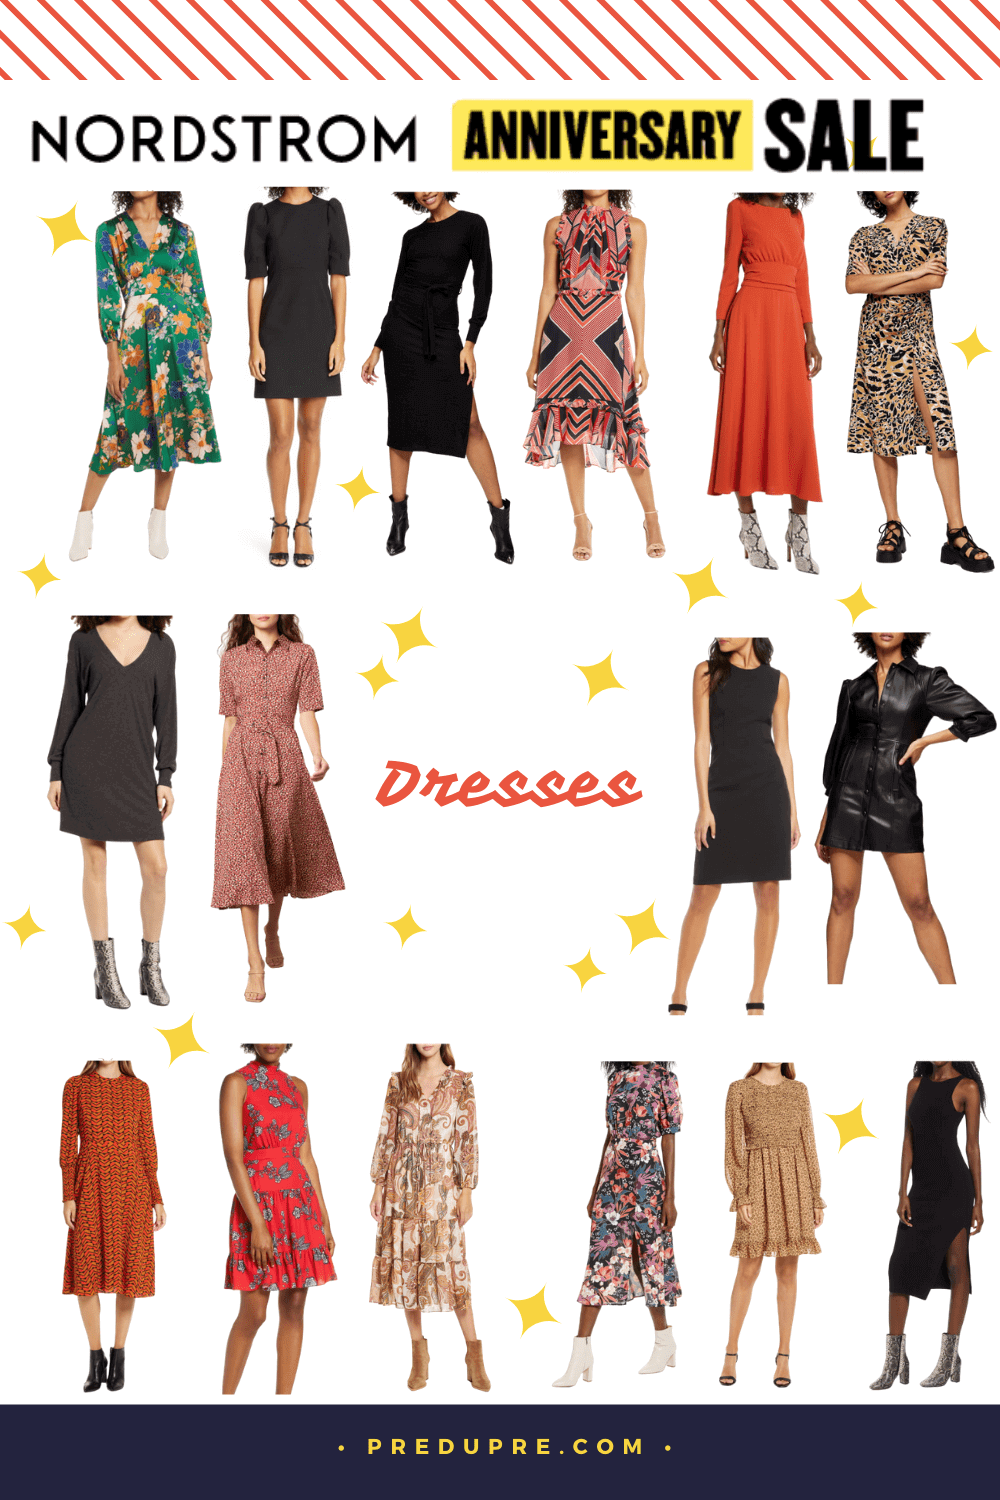 fall dresses 2020, fall dress, casual dresses, long fall dresses, women's casual midi dresses, women's dresses, maxi dresses, sweater dresses, What to wear for fall, Fall fashion inspiration, Fall fashion 2020, dressy jumpsuits, dressy rompers and jumpsuits, jumpsuits women's, women's jumpsuits and rompers, fall jumpsuits, black jumpsuit, fall fashion outfits, fall outfits, fall outfit ideas, fall outfits 2020, fall outfit ideas 2020, fall clothes, what to wear in fall, ideas for fall fashionhow to style fall clothing, Nordstrom anniversary sale, #nsale, Nordstrom anniversary sale 2020,